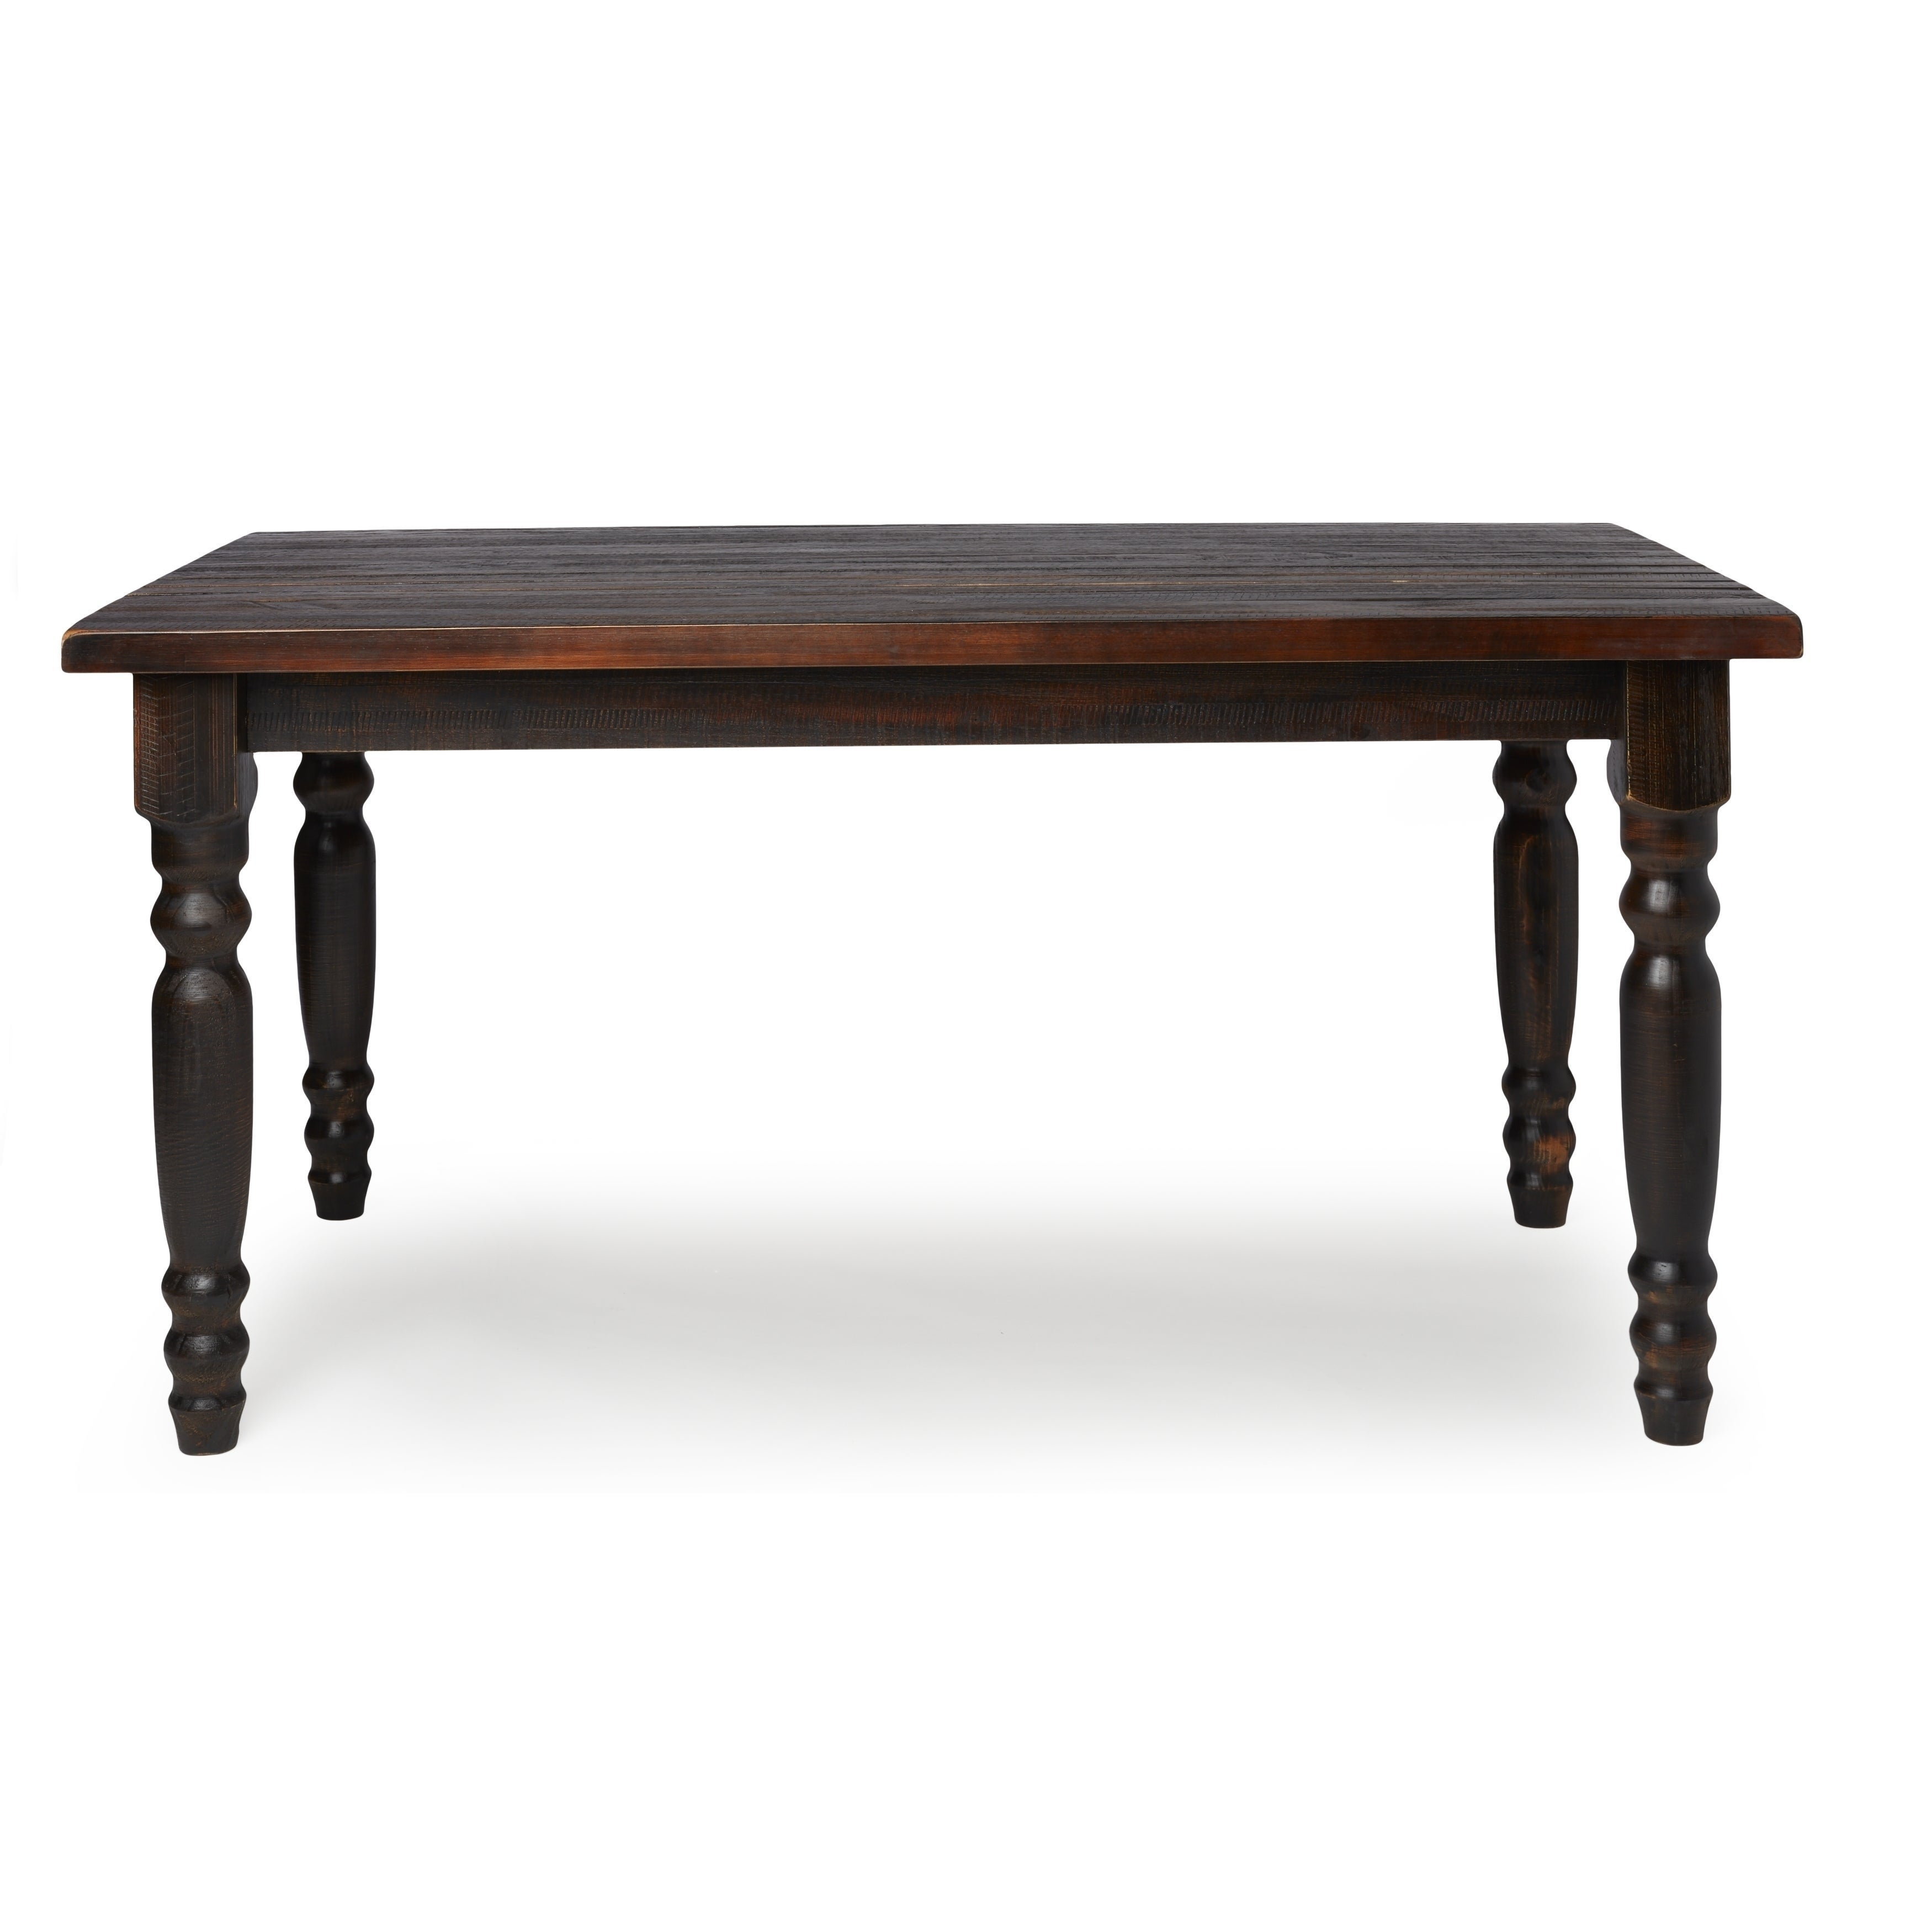 All Wood Dining Room Table Buy Kitchen u0026 Dining Room Tables Online at Overstock | Our Best Dining Room  u0026 Bar Furniture Deals